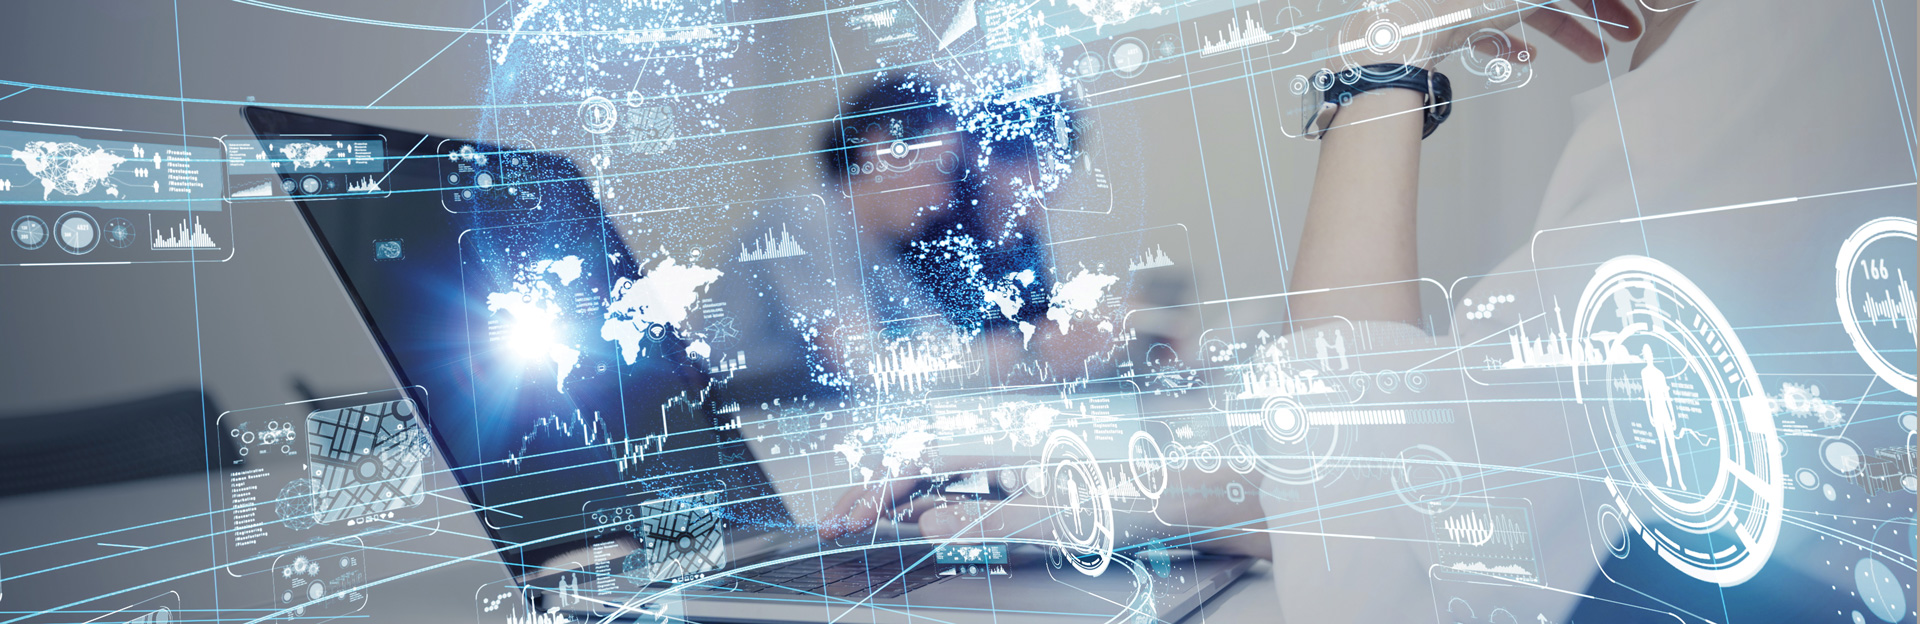 Optimizing Value from Data and Analytics: Now and In the Future